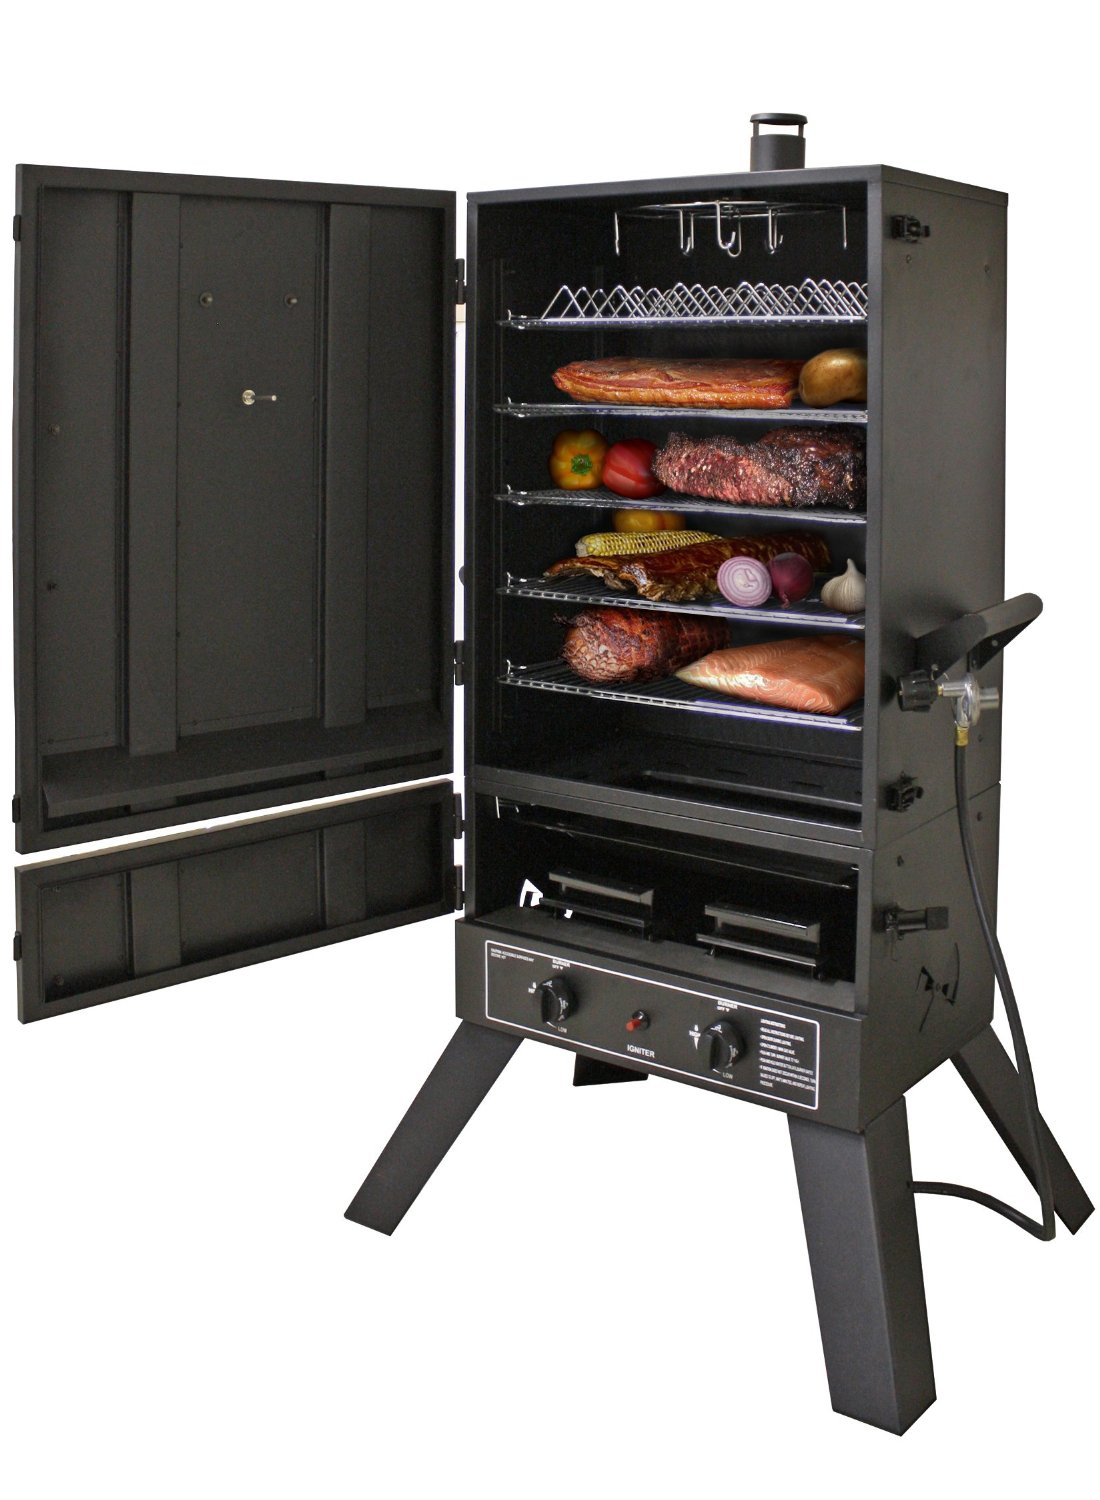 Smoke Hollow 44241G2 44-Inch Vertical LP Gas Smoker Review